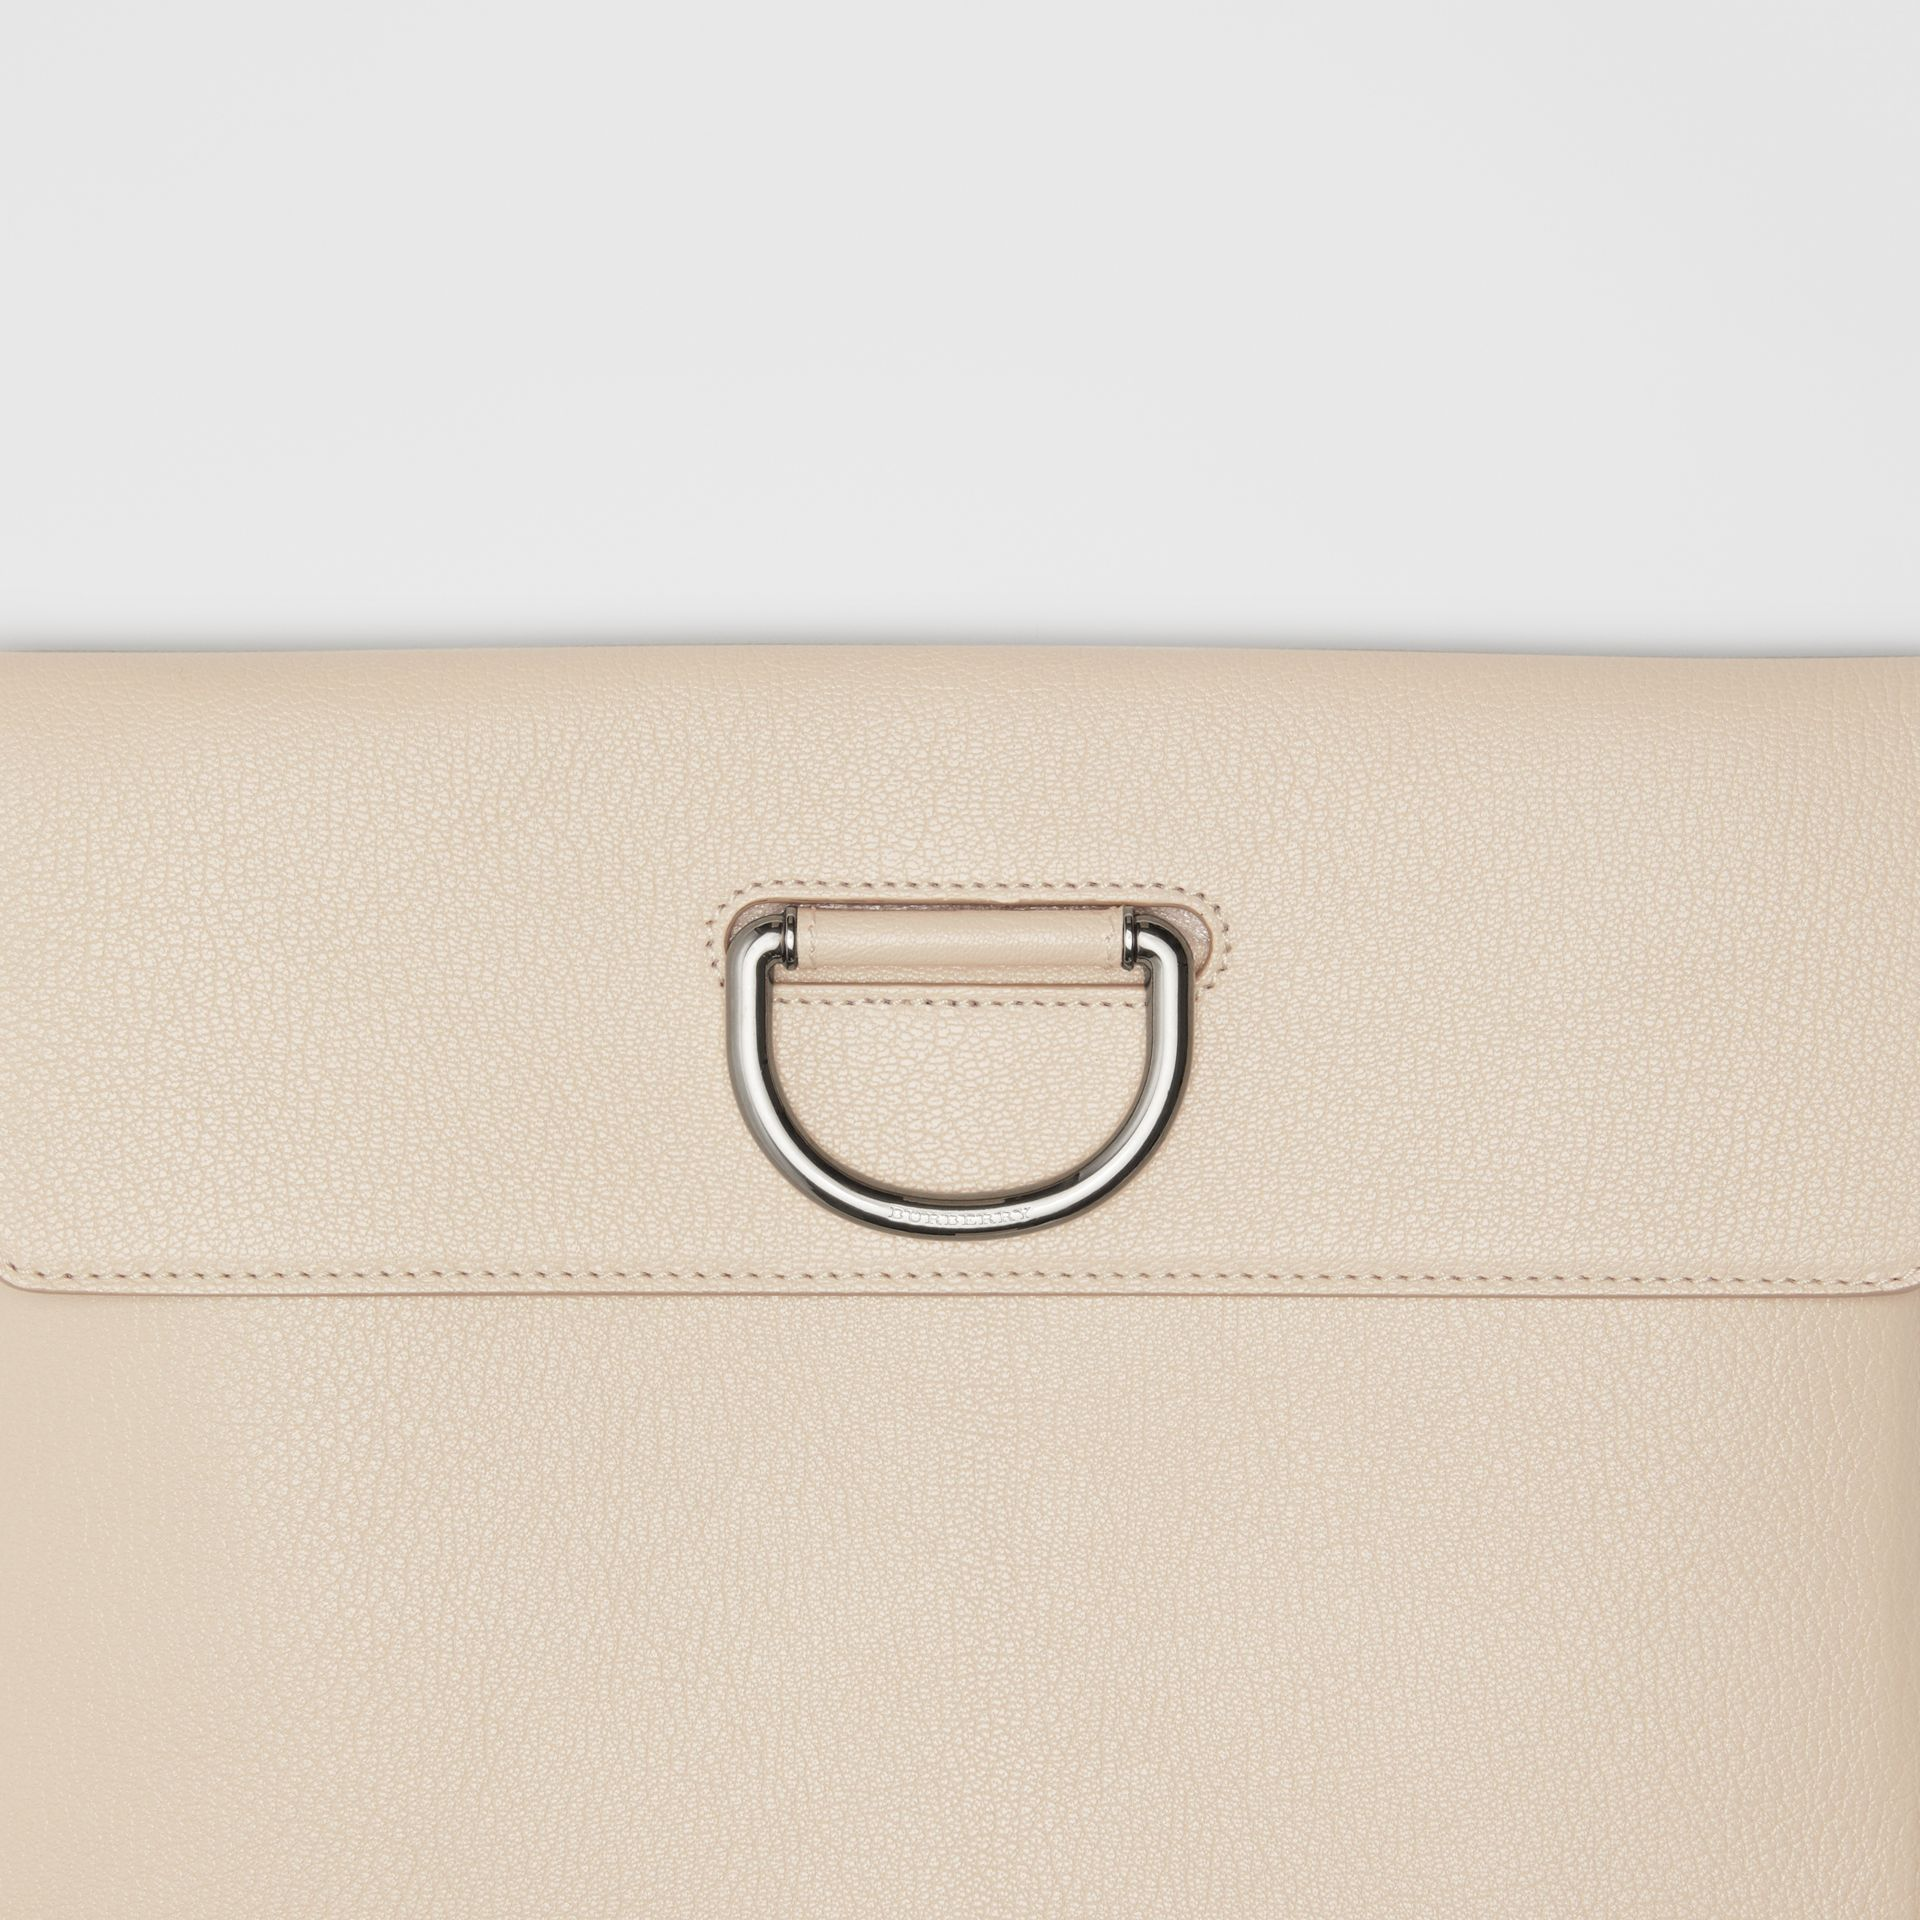 D-ring Leather Pouch in Stone - Women | Burberry Singapore - gallery image 1